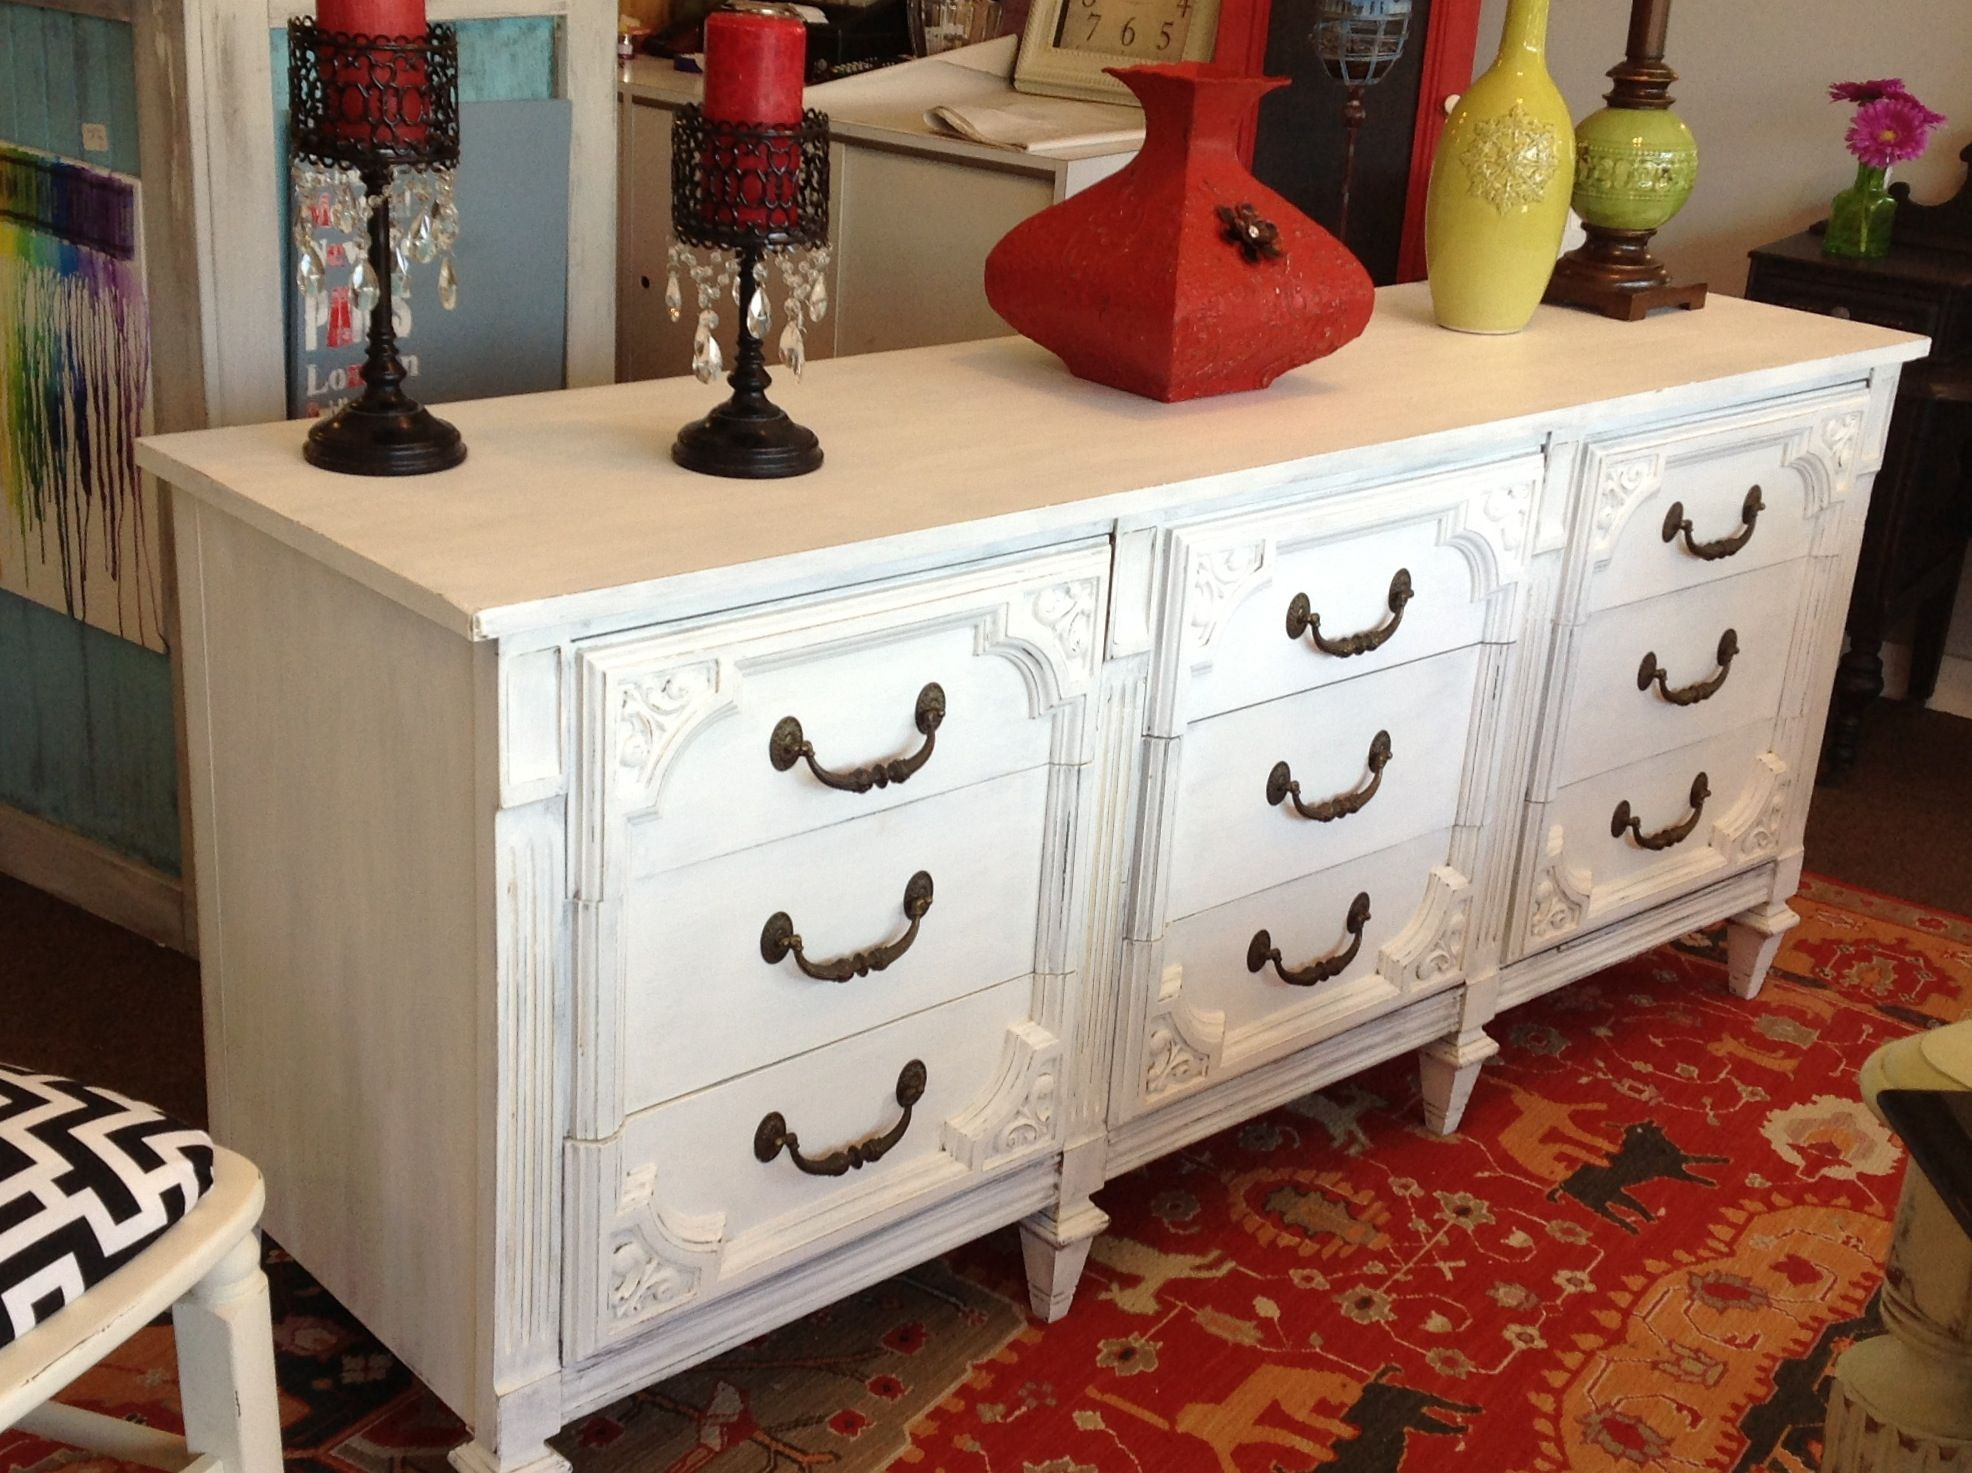 Done In White 71X9X30H | Kiki's Kottage, 320 Main St Regarding Pineville Dining Sideboards (Photo 15 of 30)